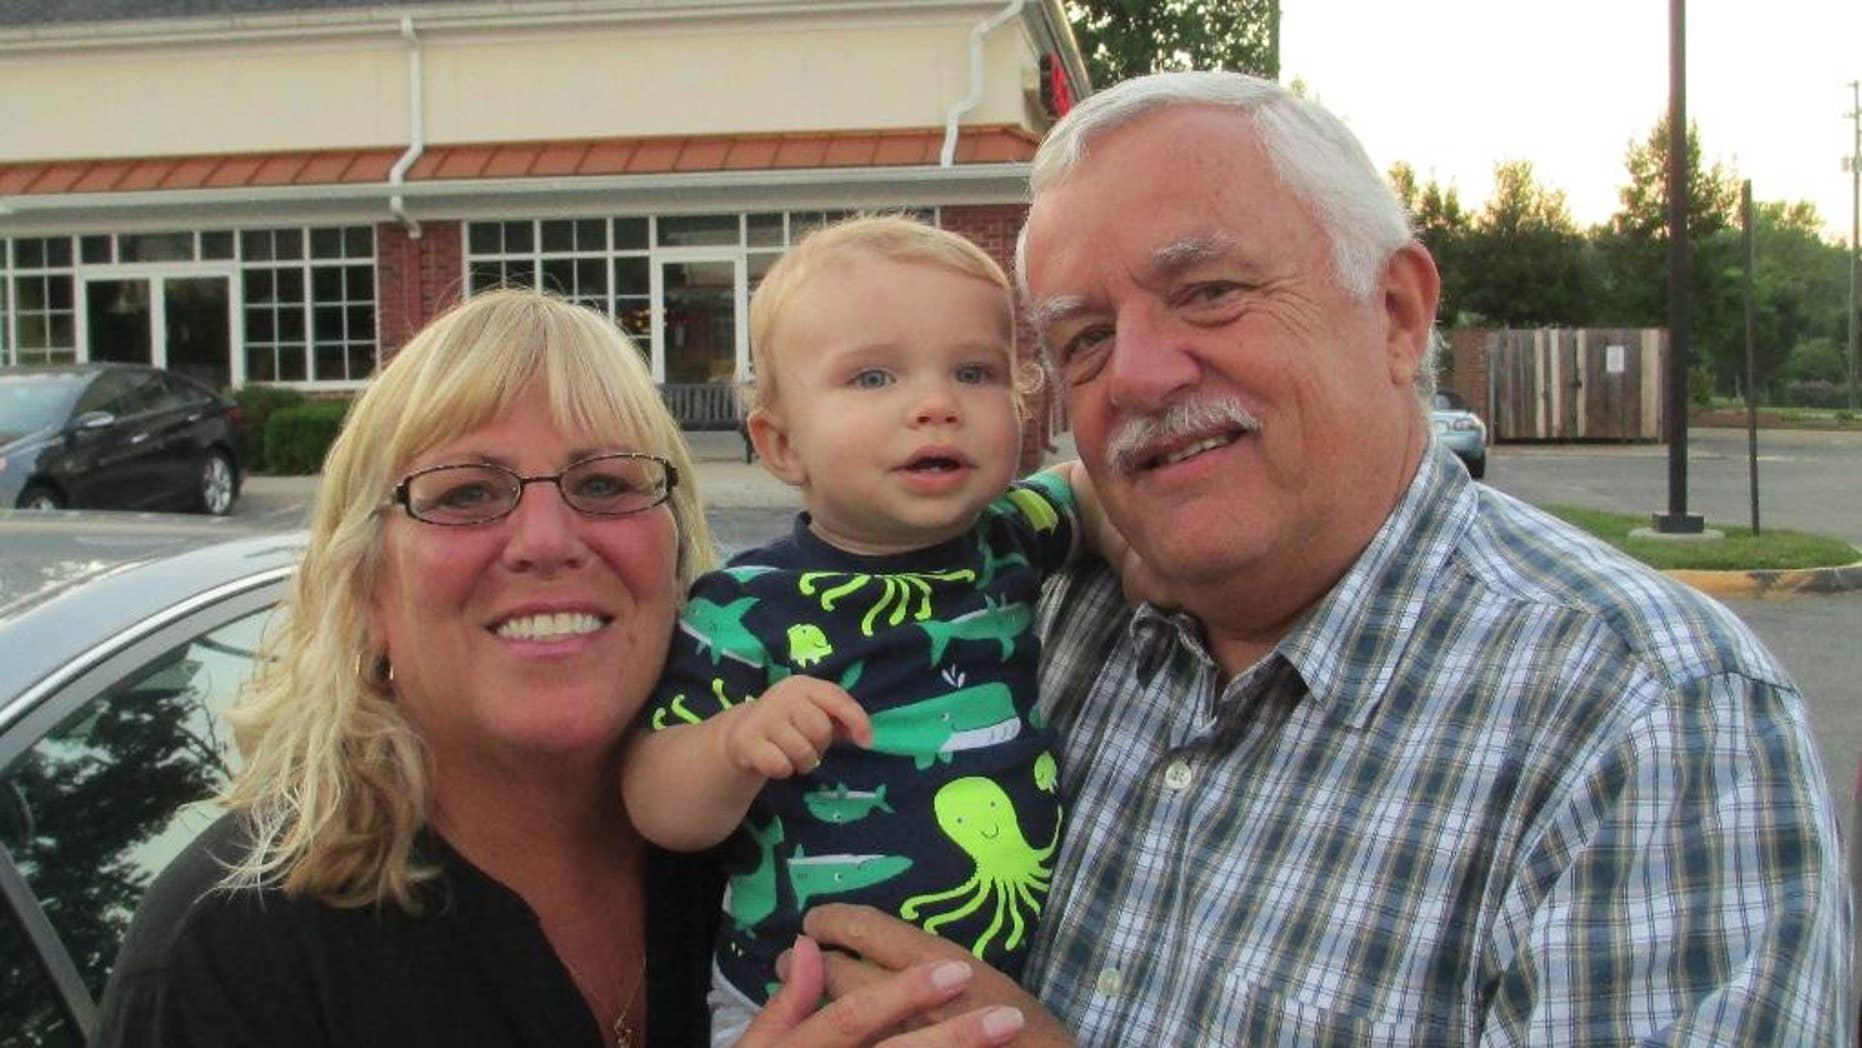 This June 15, 2014 photo provided by the family of Joseph Allen shows one-year-old Joseph Allen, center with his grandparents LuAnn Allen, left, and Herman Allen, right in Richmond, Va. Allen died after a fire broke out at his Midlothian home day care, which was being operated illegally, in 2014. Gov. Terry McAuliffe signed a bill this week that would make it a felony — punishable with up to 10 years in prison — if a child is hurt or killed in a day care that is not properly licensed.  (Matthew Allen via AP)